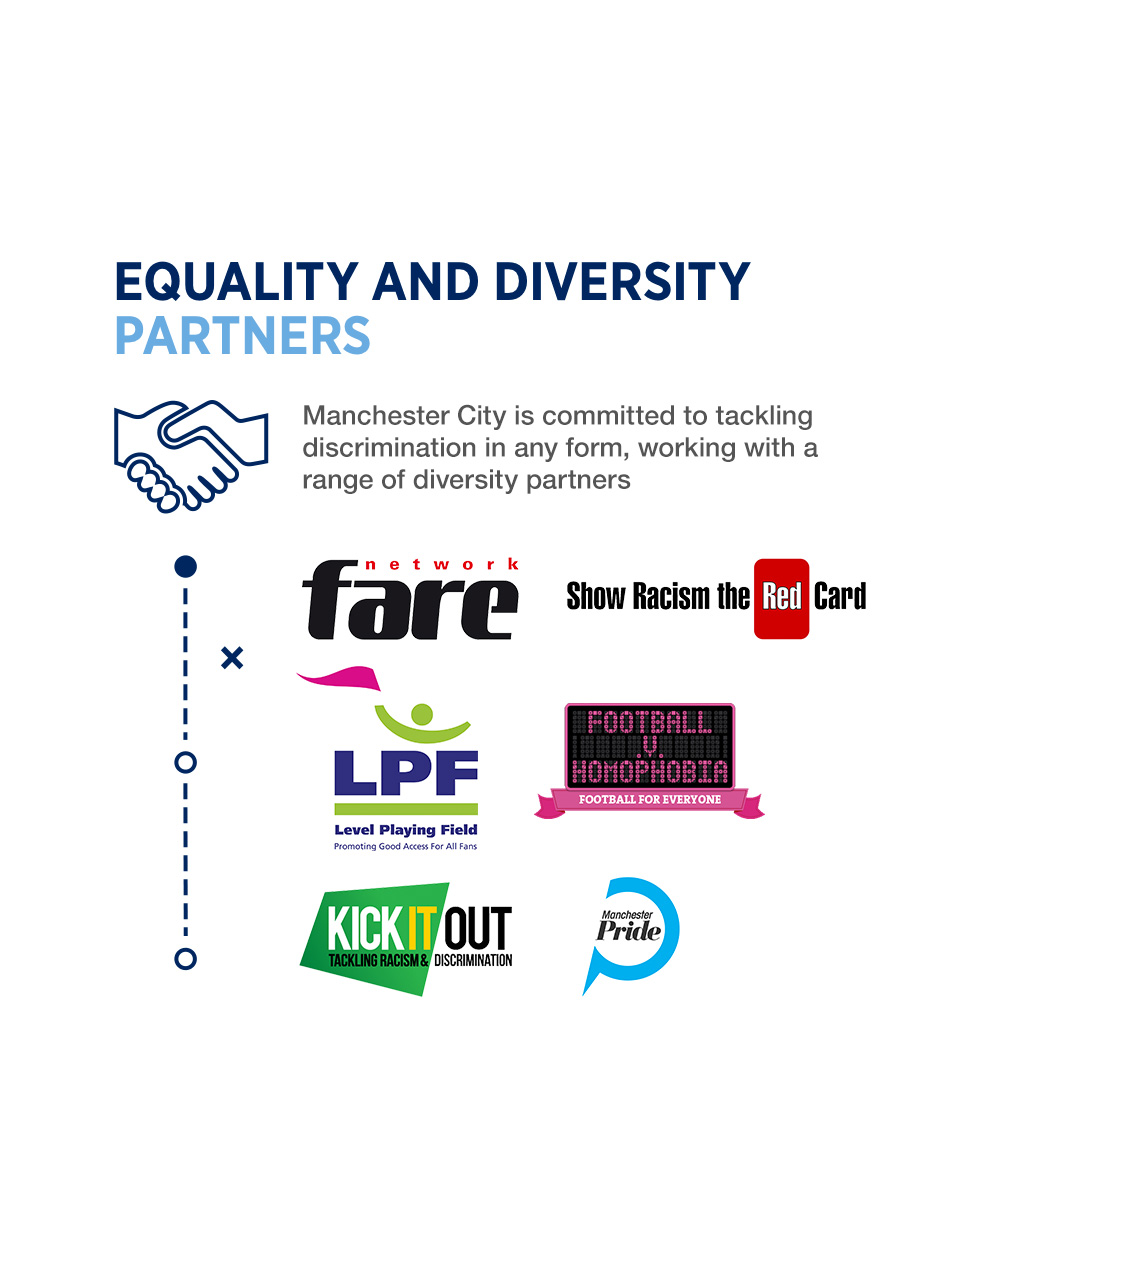 Manchester City is committed to tackling discrimination in any form, working with a range of diversity partners